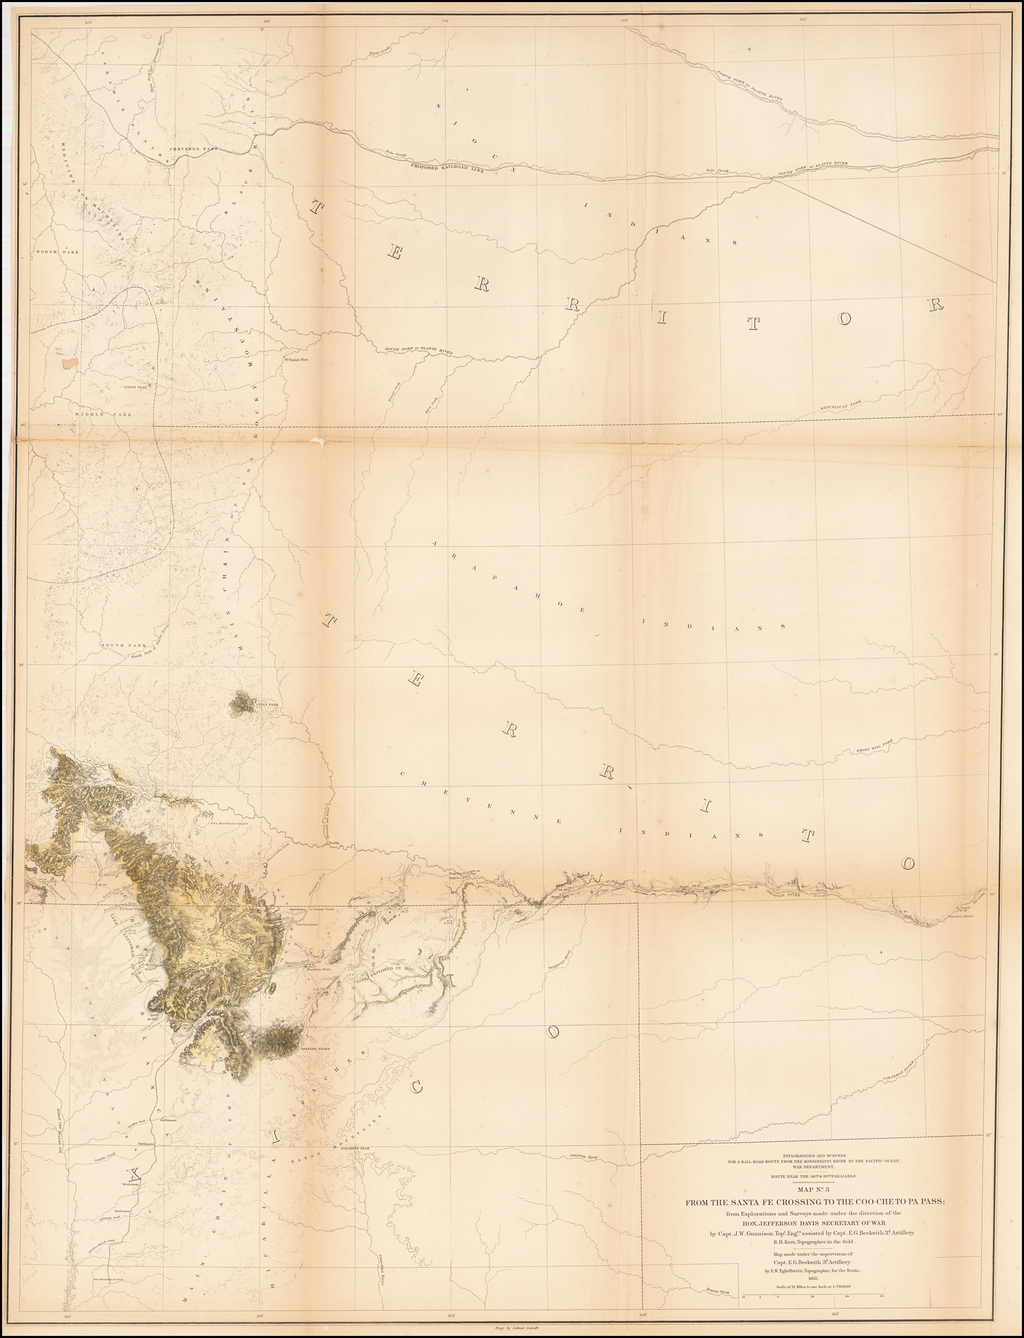 Map No.3. From the Santa Fe Crossing to Coo-Che-To-Pa Pass  . . . by Capt. J.W. Gunnison Topl. Engrs assisted by Capt E.G. Beckwith 3d Artillery R.H. Kern, Topographer in the field . . . 1855 By U.S. Pacific RR Survey